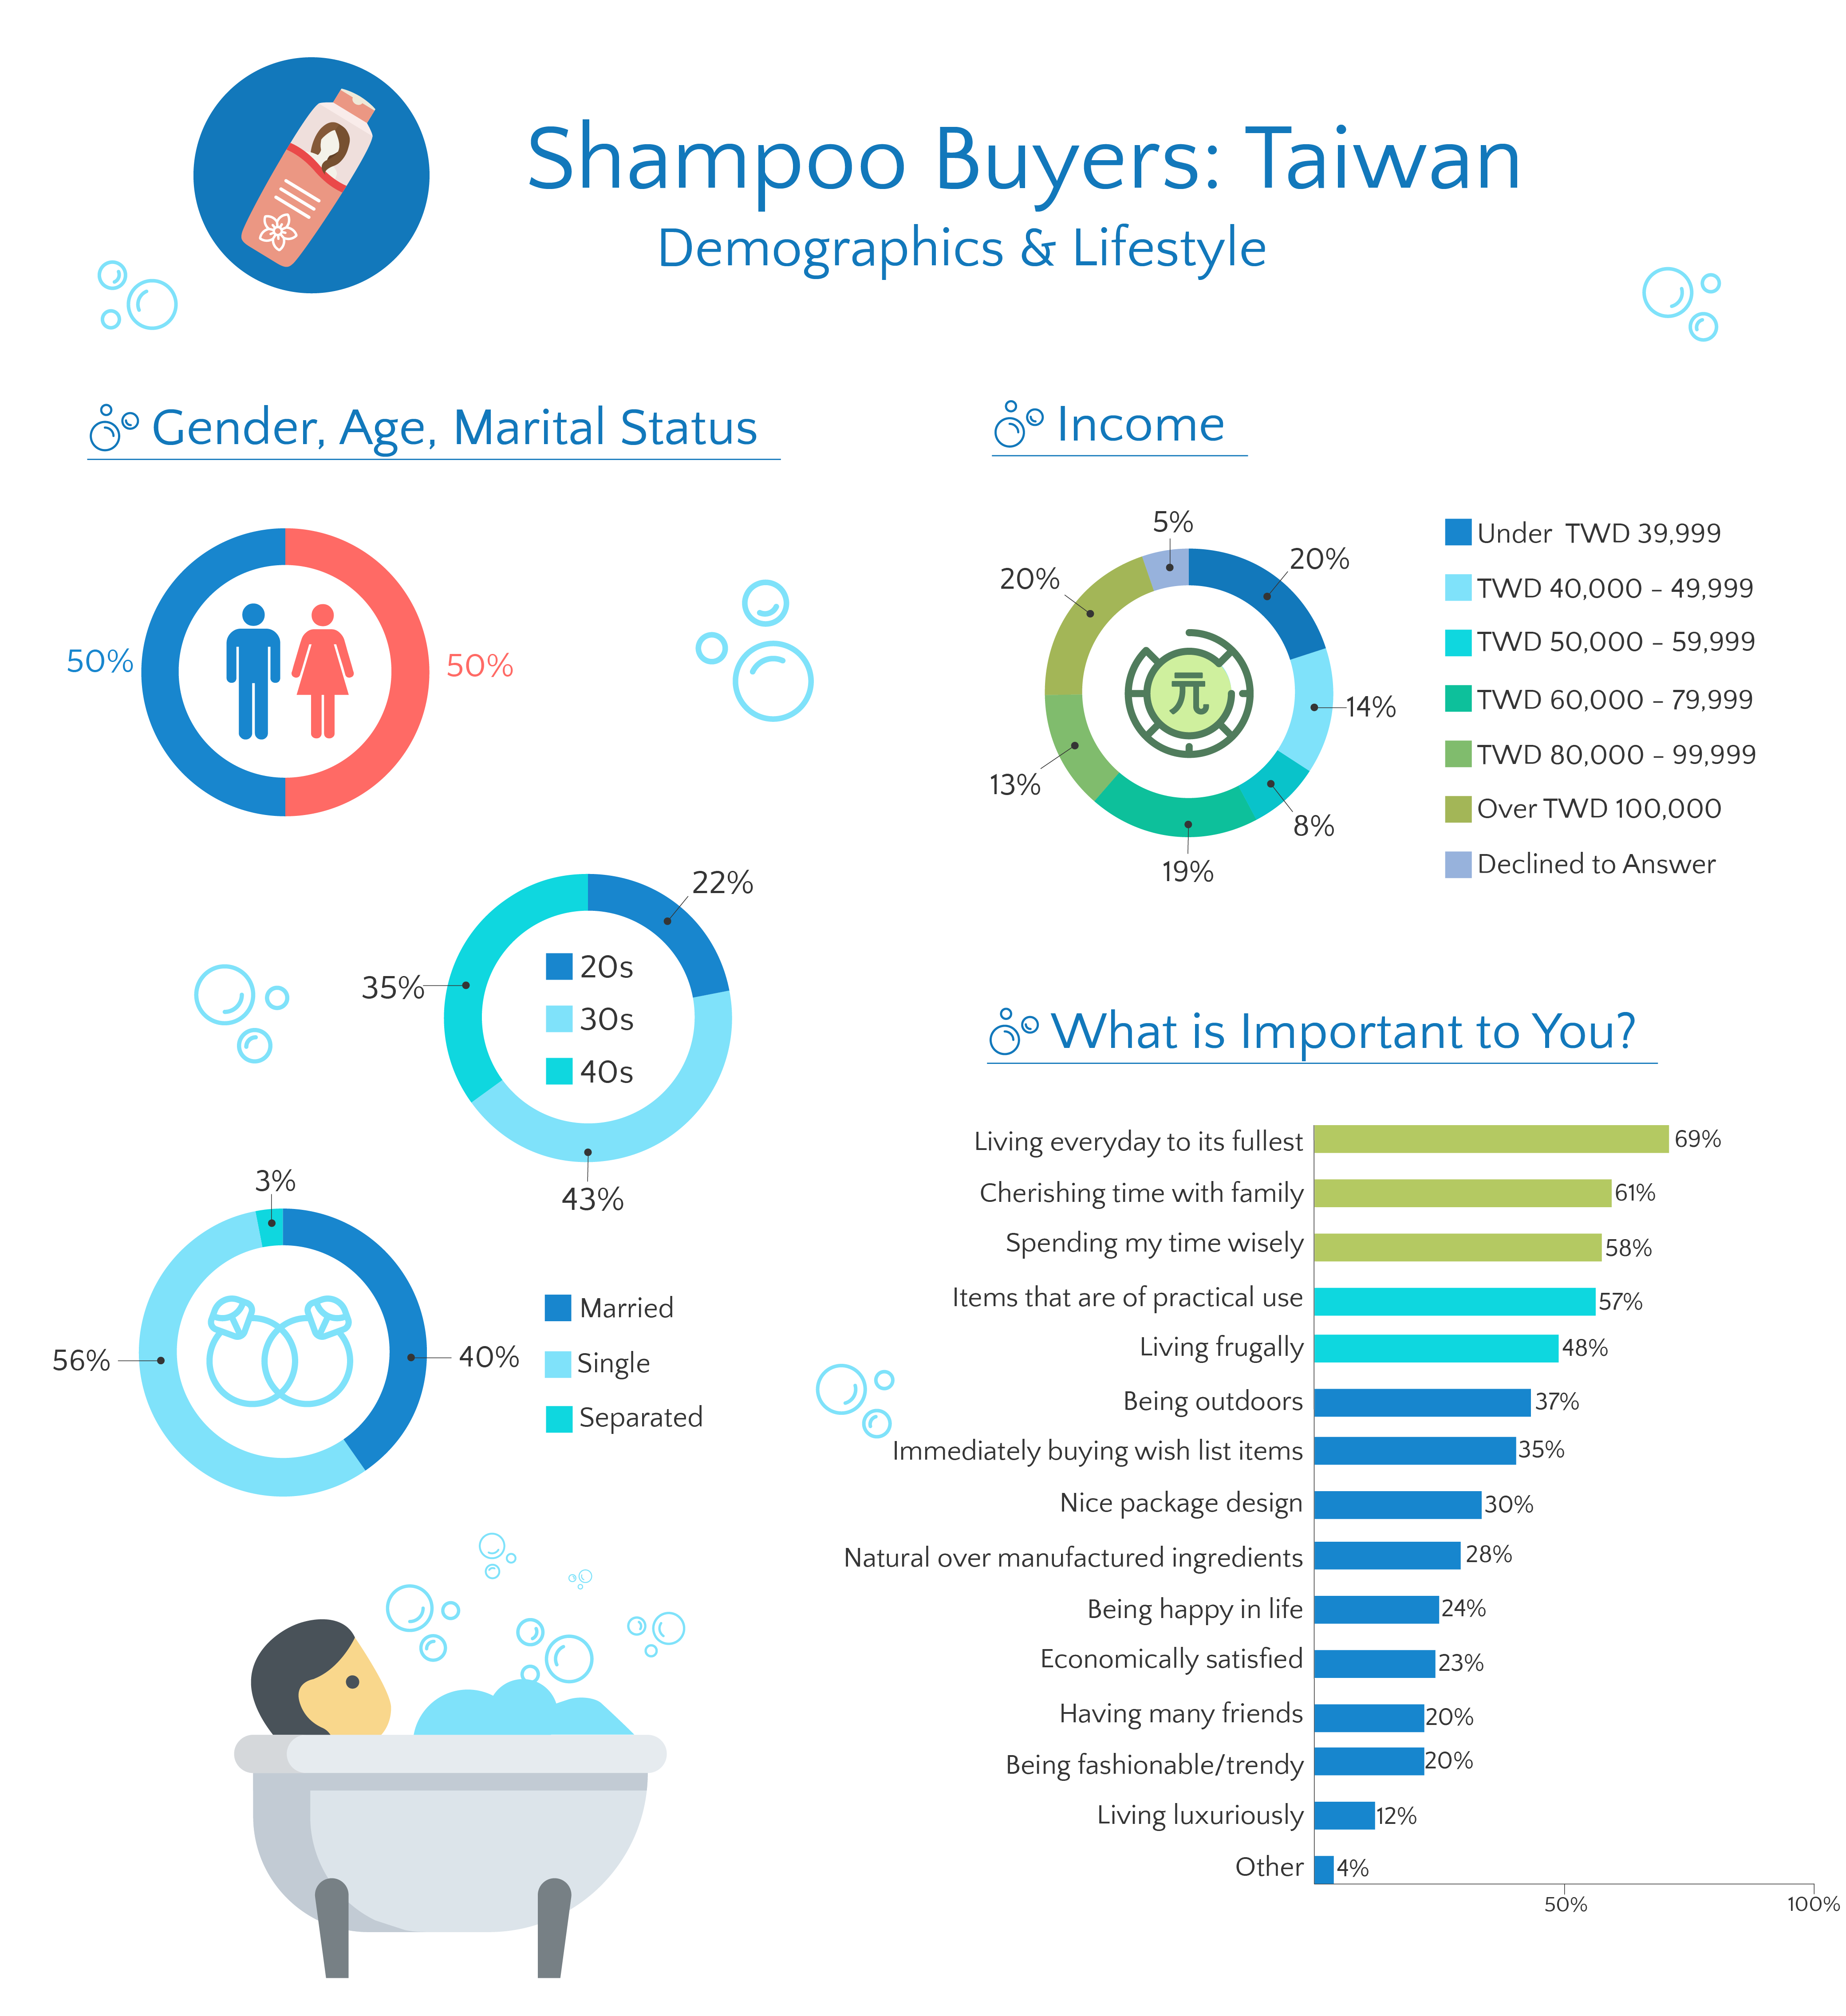 Taiwan Shampoo infographic demographic & lifestyle